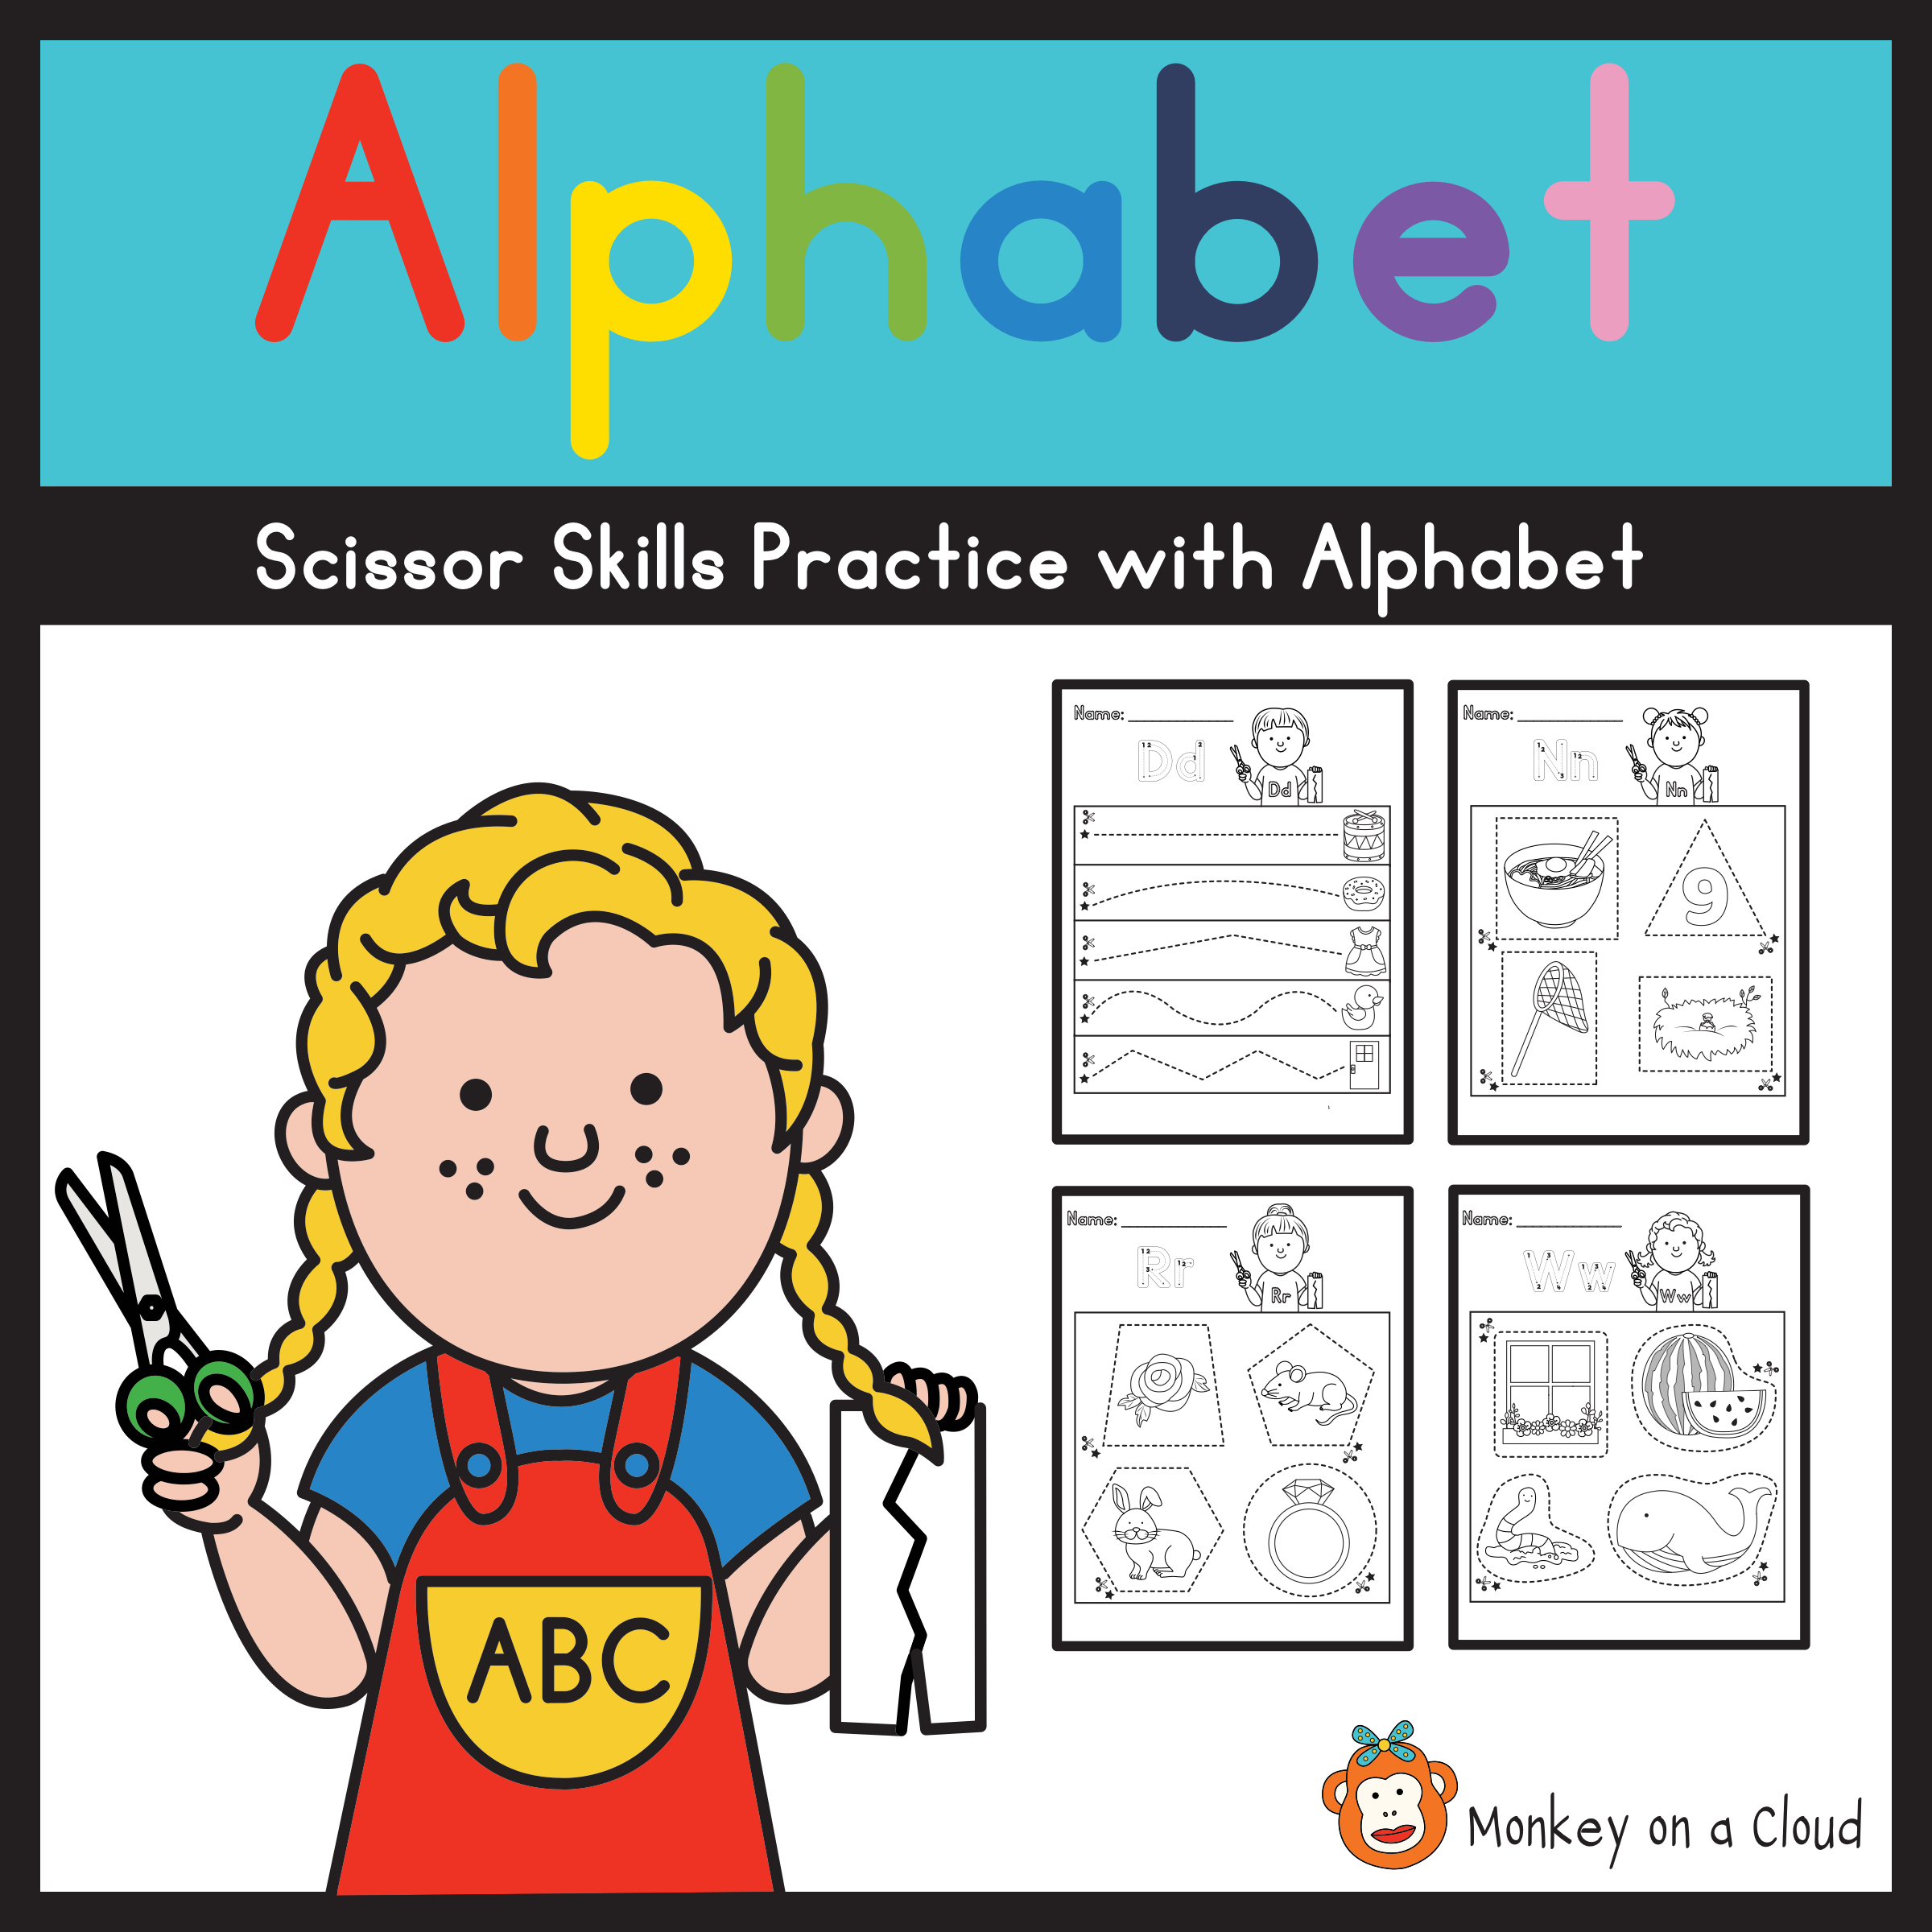 Scissor Skills Practice With Alphabet In